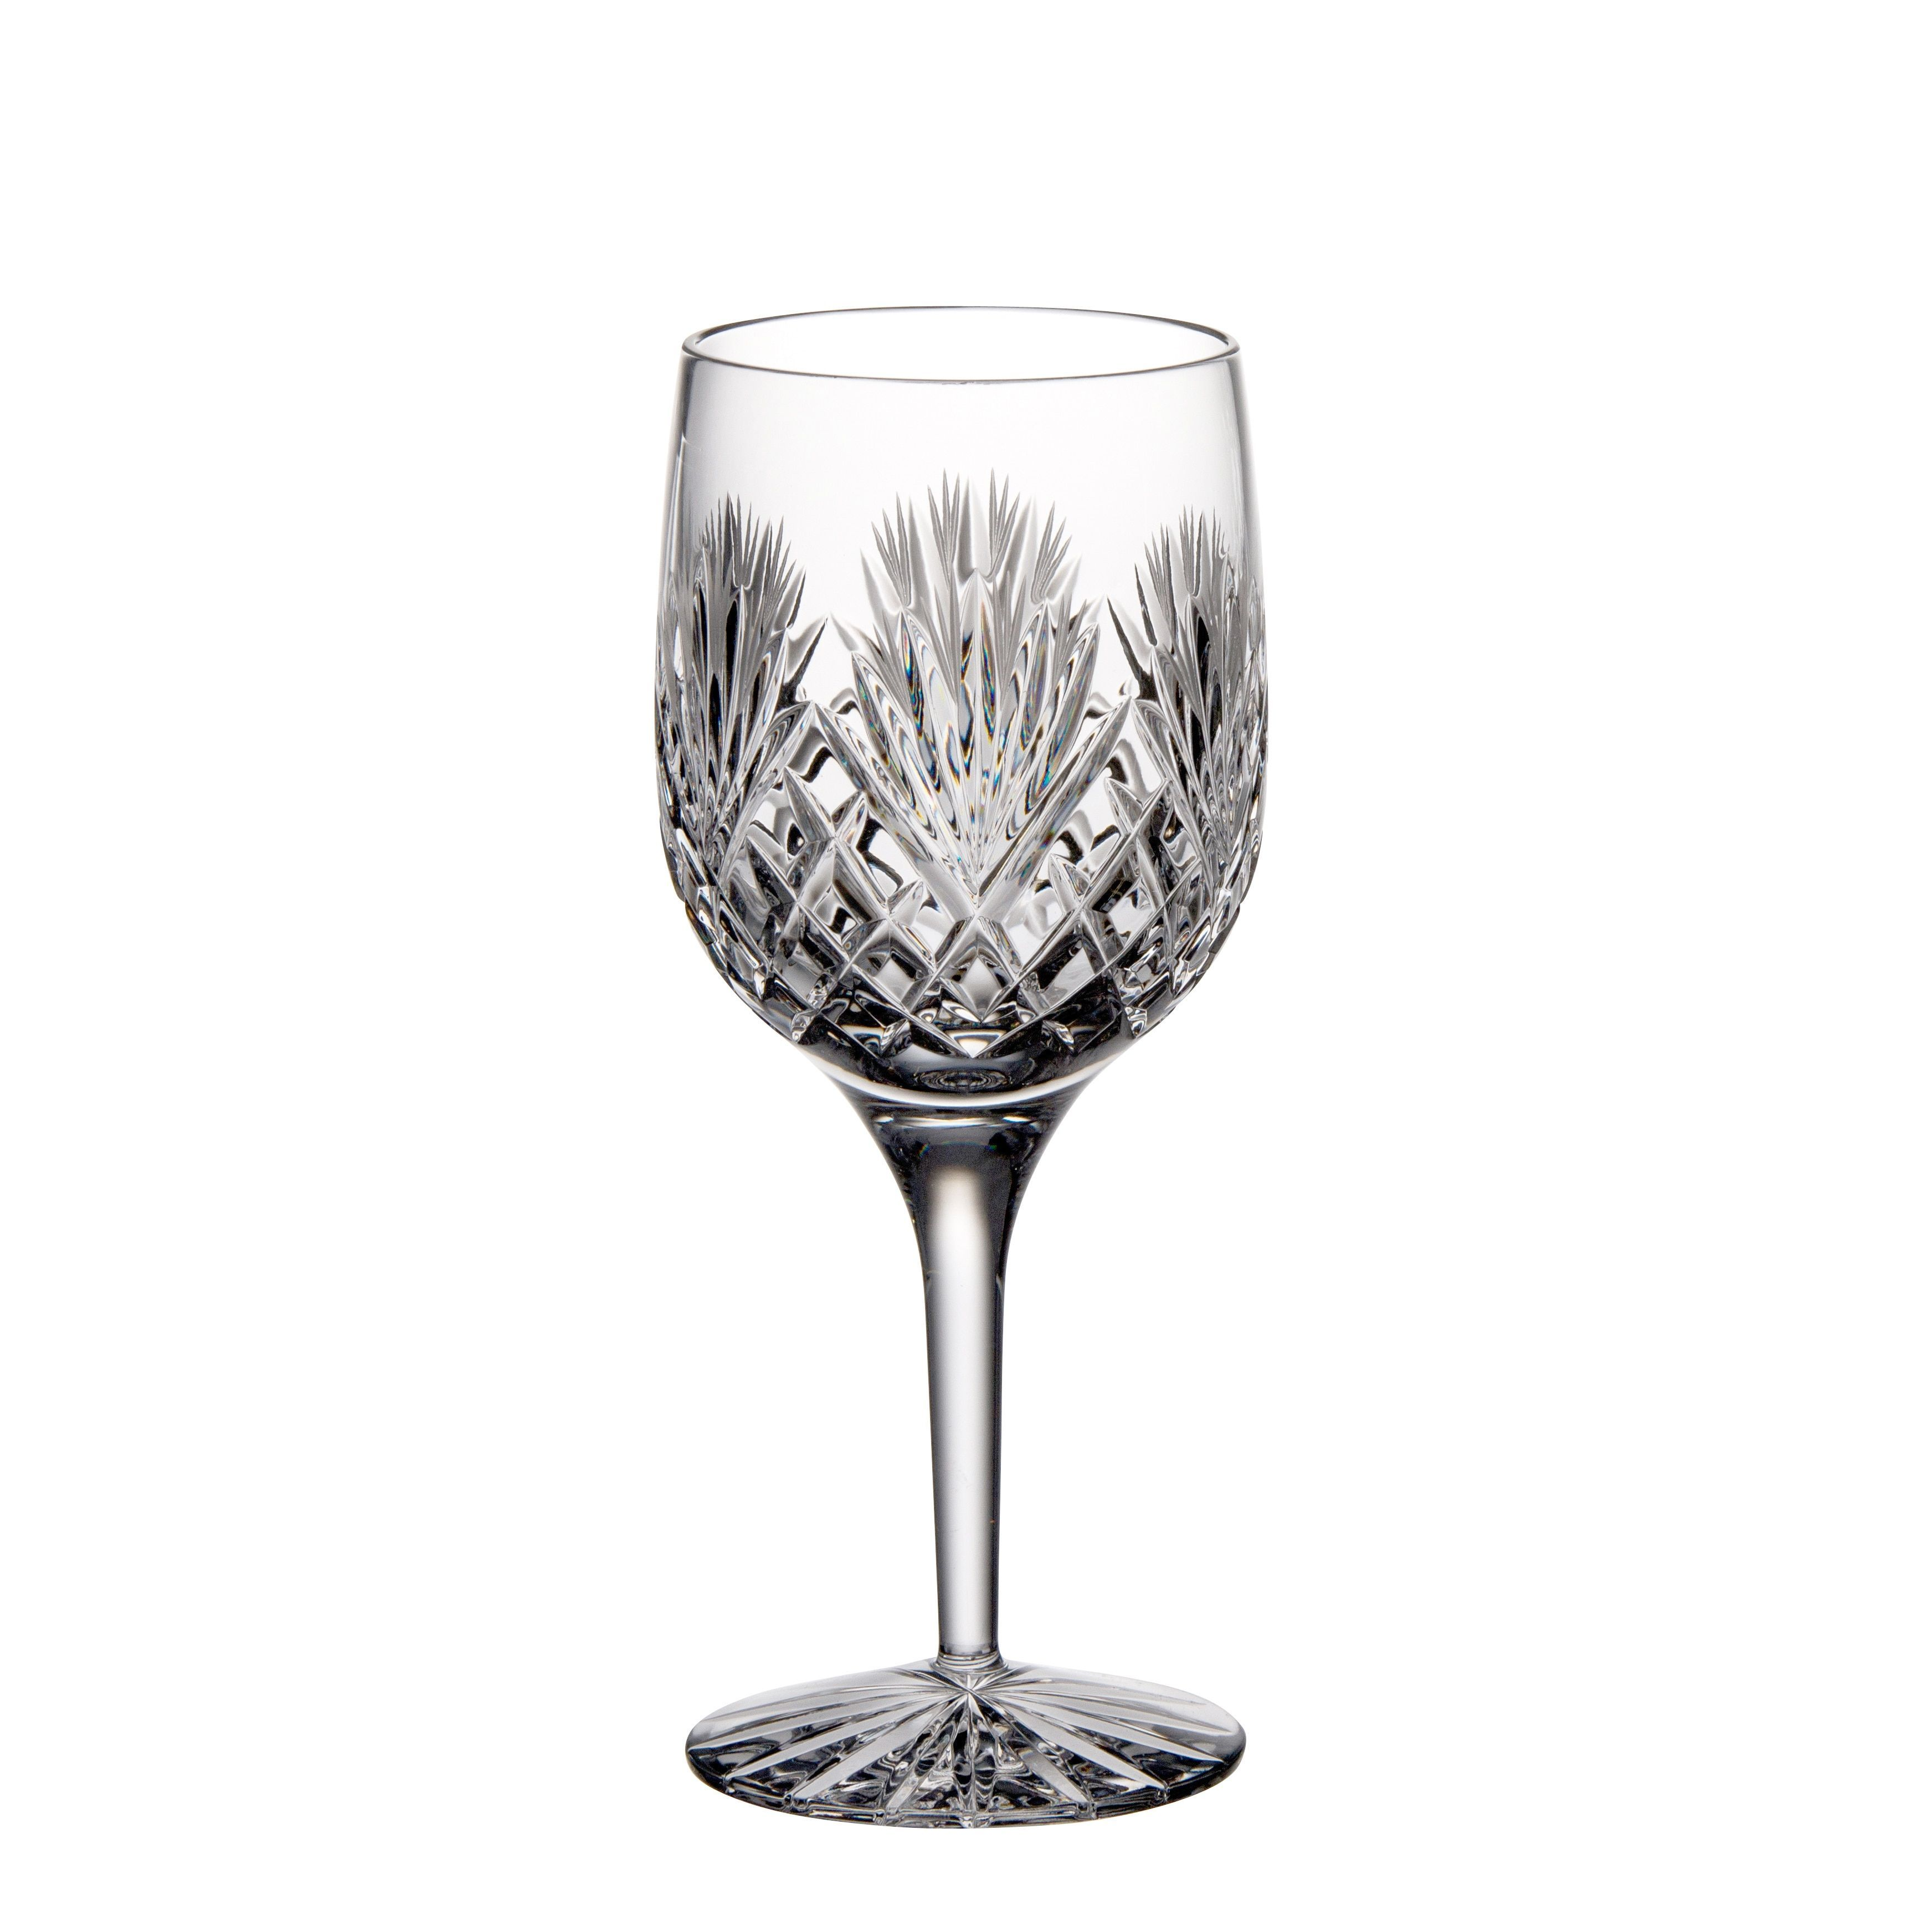 Majestic Gifts Clear Hand-cut Crystal 9-ounce Red Wine Goblet (Pack of 4) (Clear) (Glass)